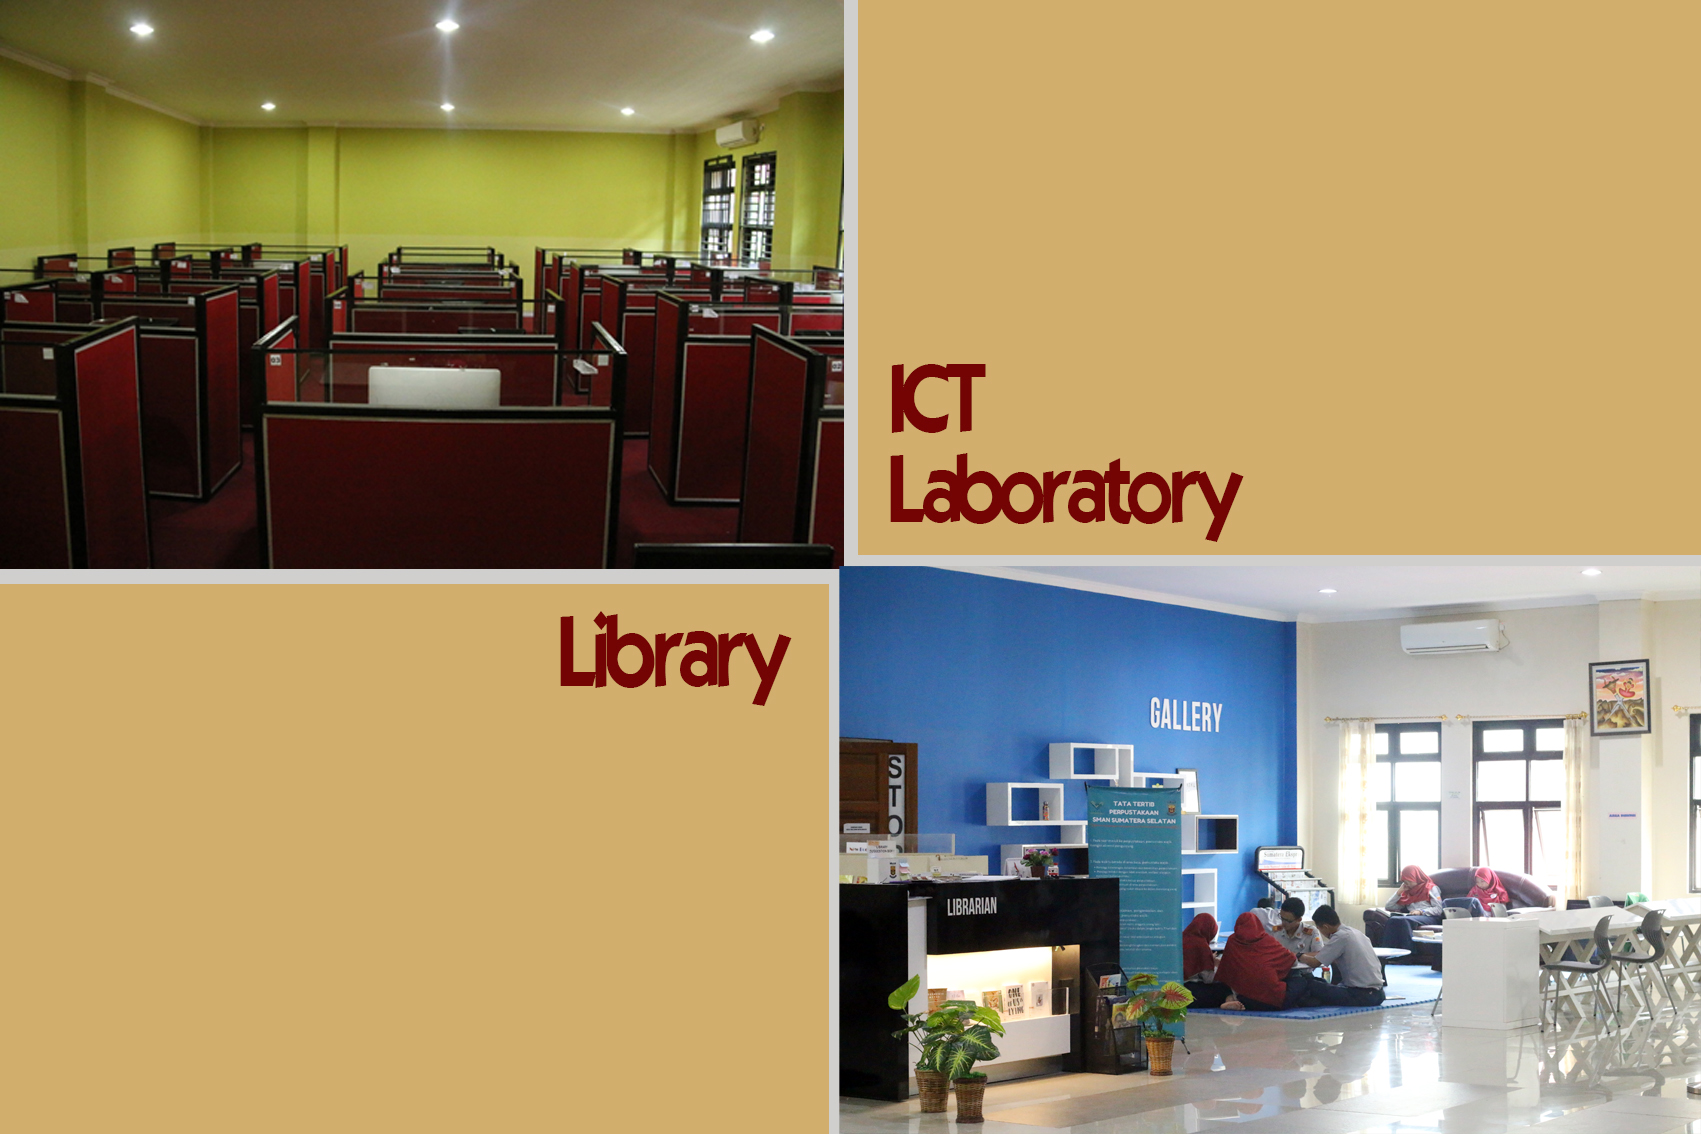 libraryict